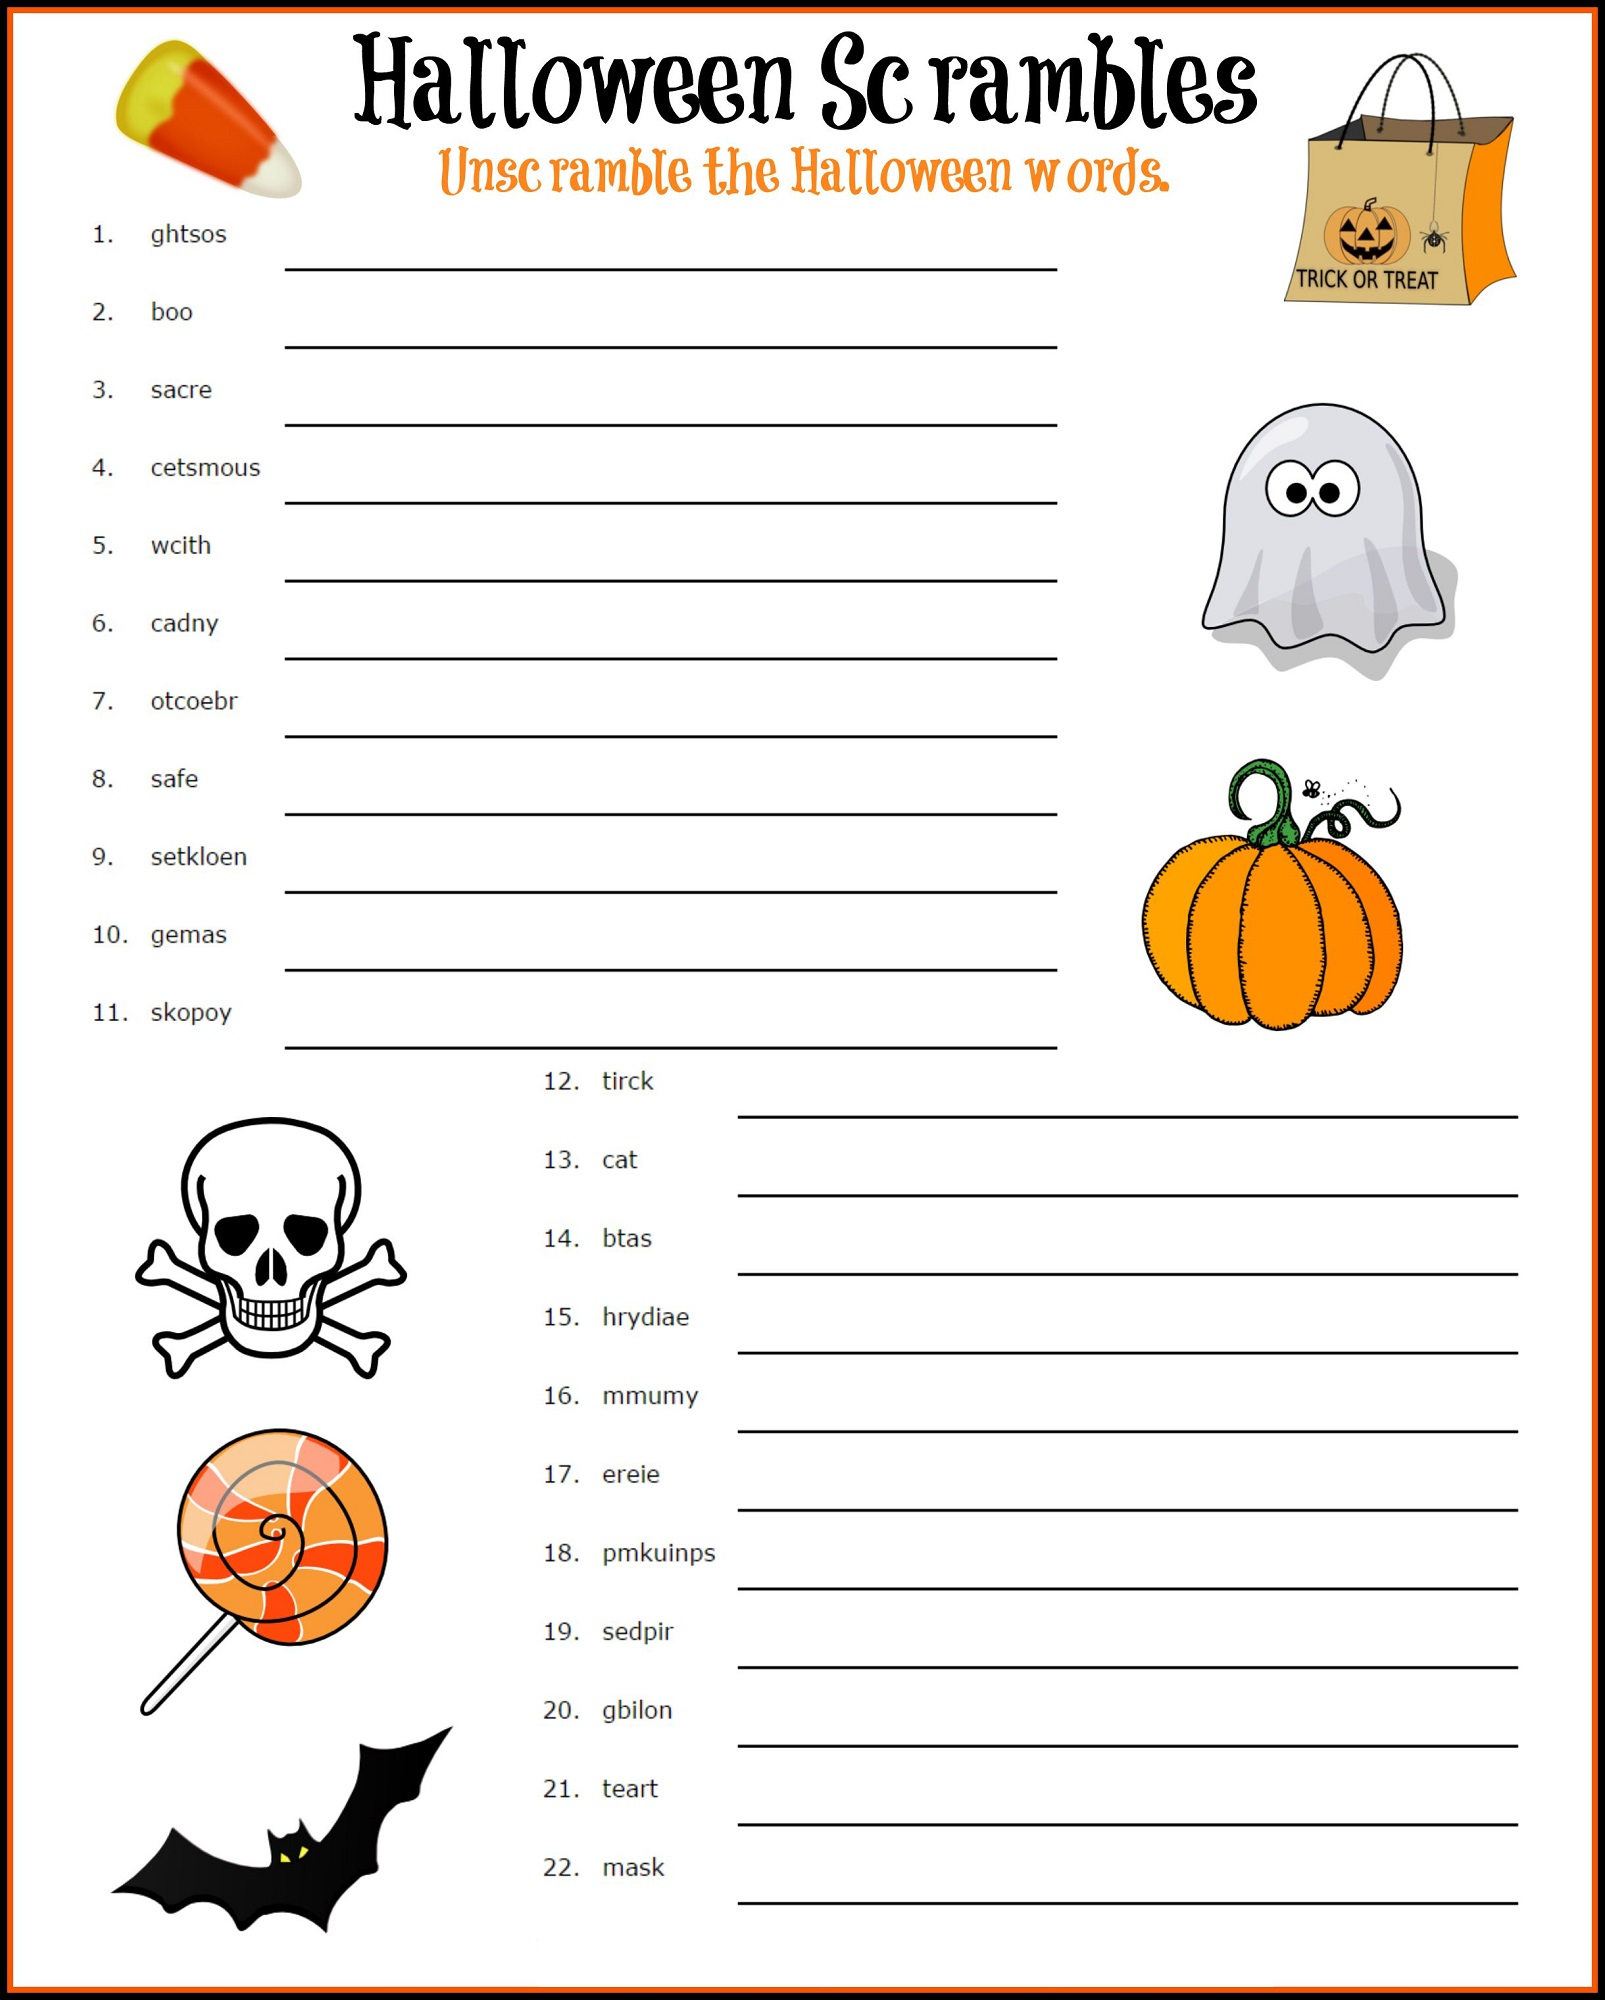 easy-word-scrambles-for-kids-halloween